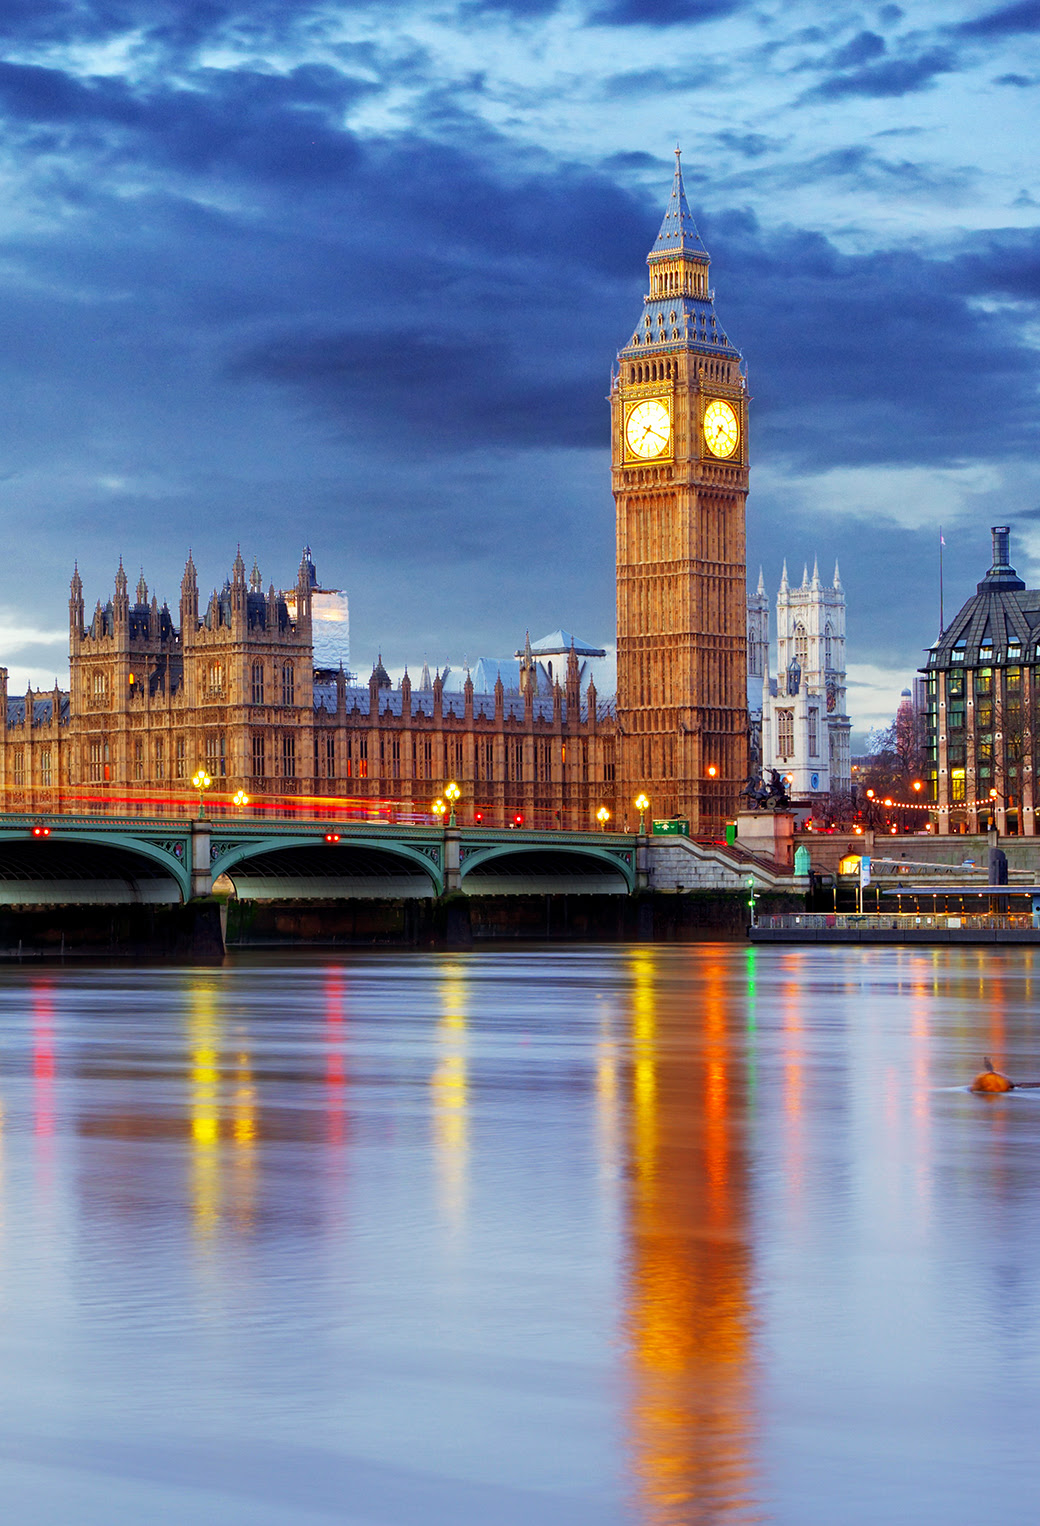 Big Ben London Wallpaper for iPhone X, 8, 7, 6  Free Download on 3Wallpapers